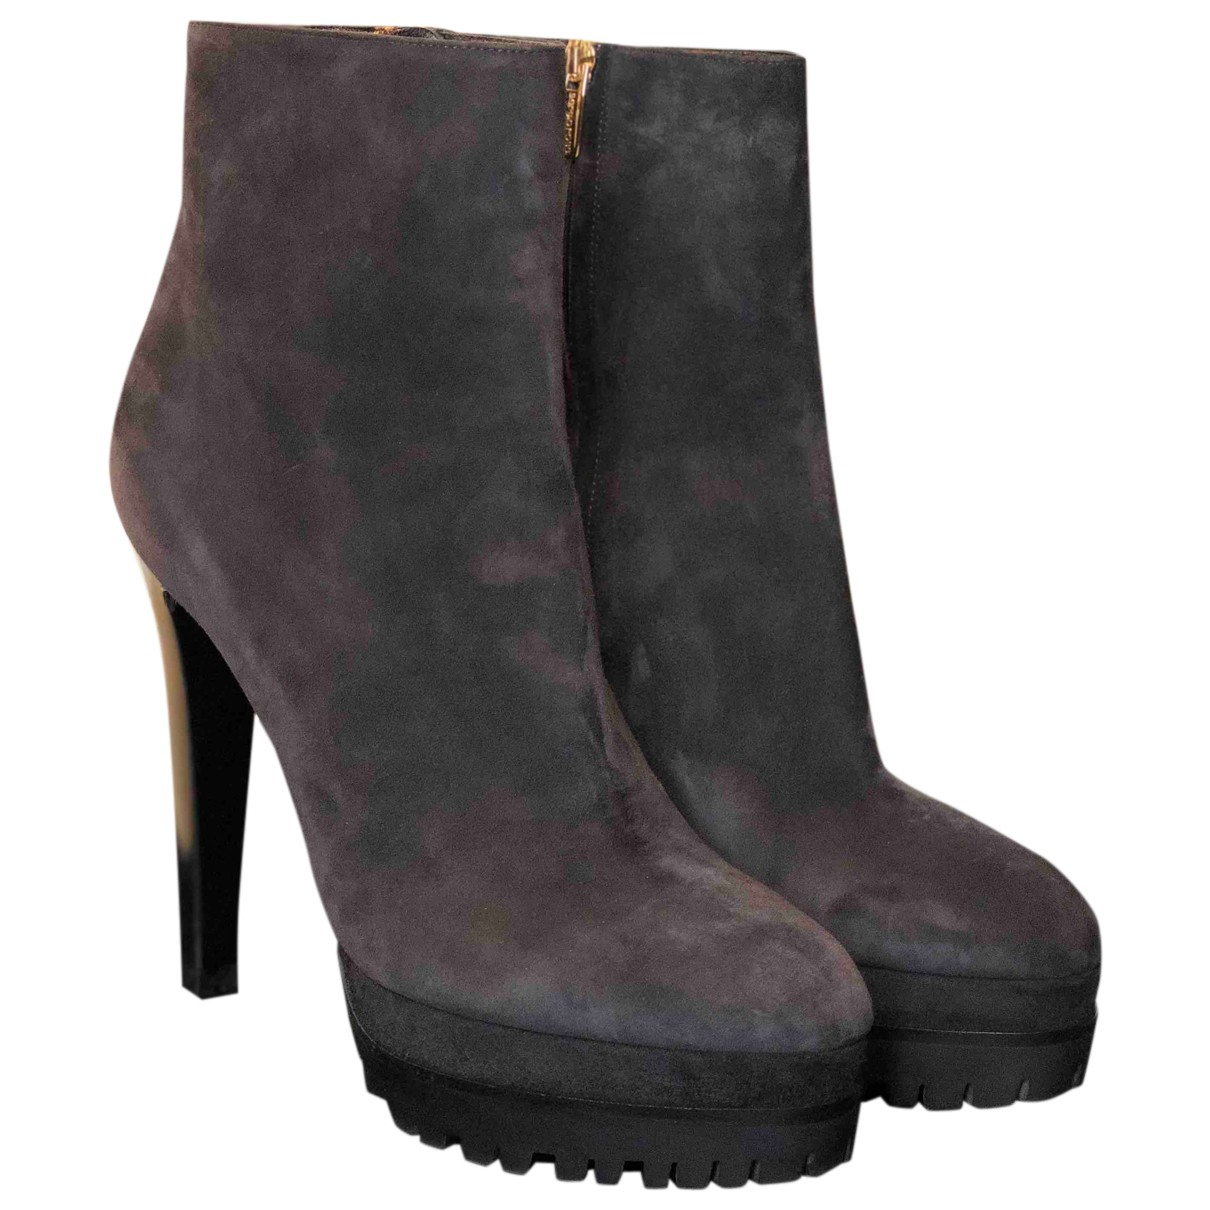 Sergio Rossi N Grey Suede Ankle boots for Women 41 IT